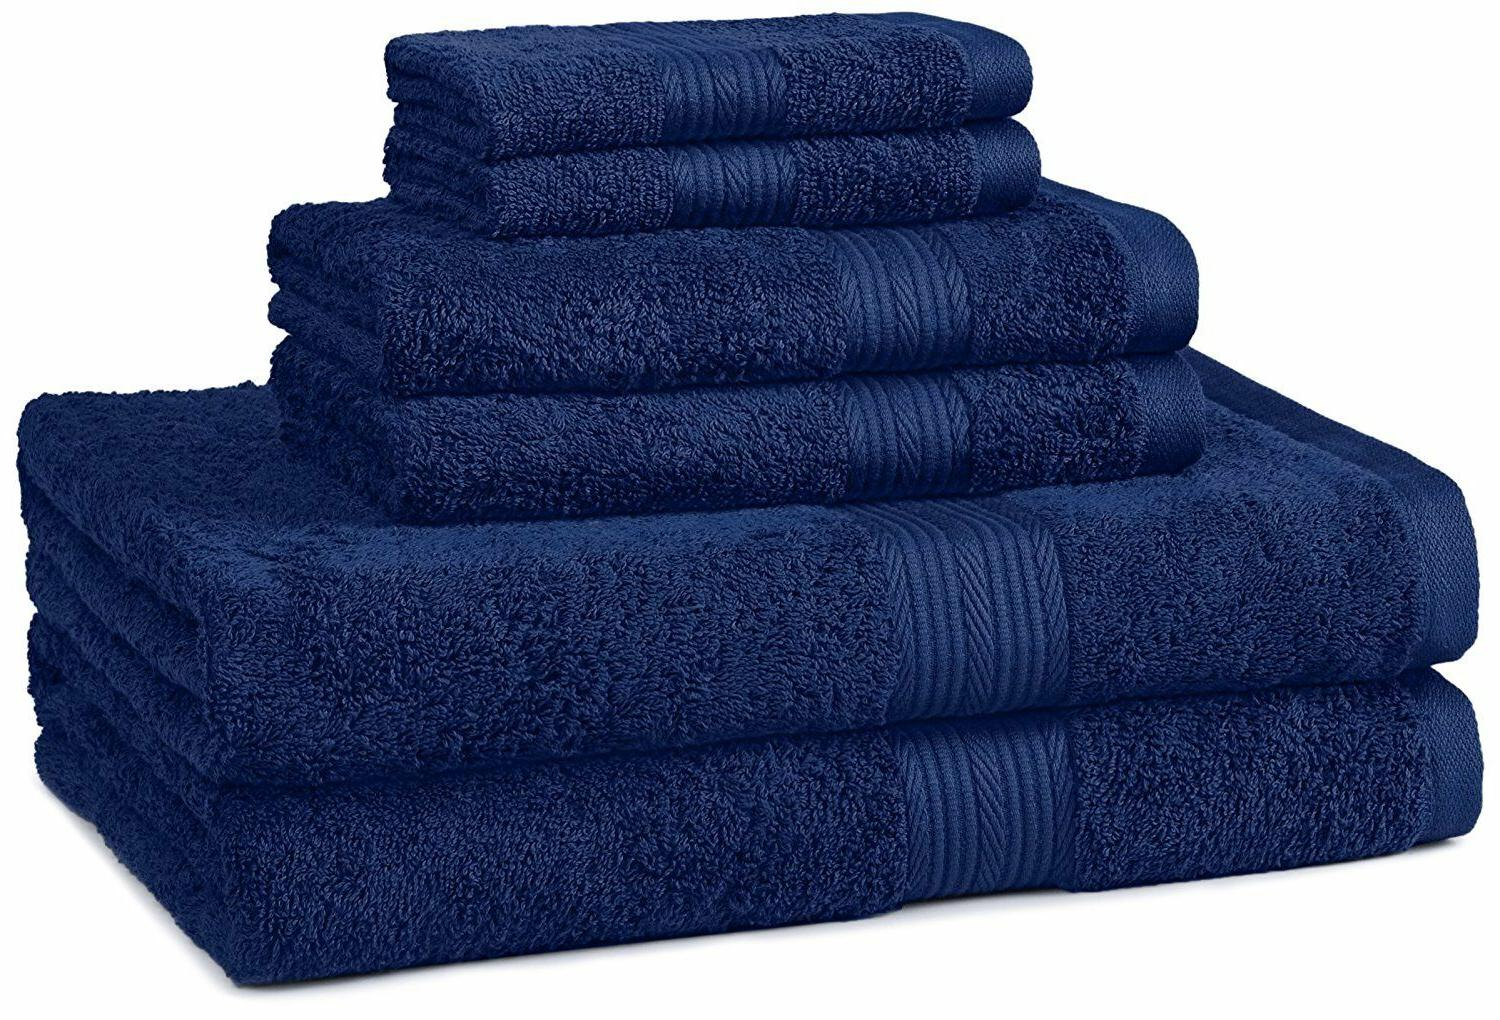 AmazonBasics Towel Pick 7 Colors